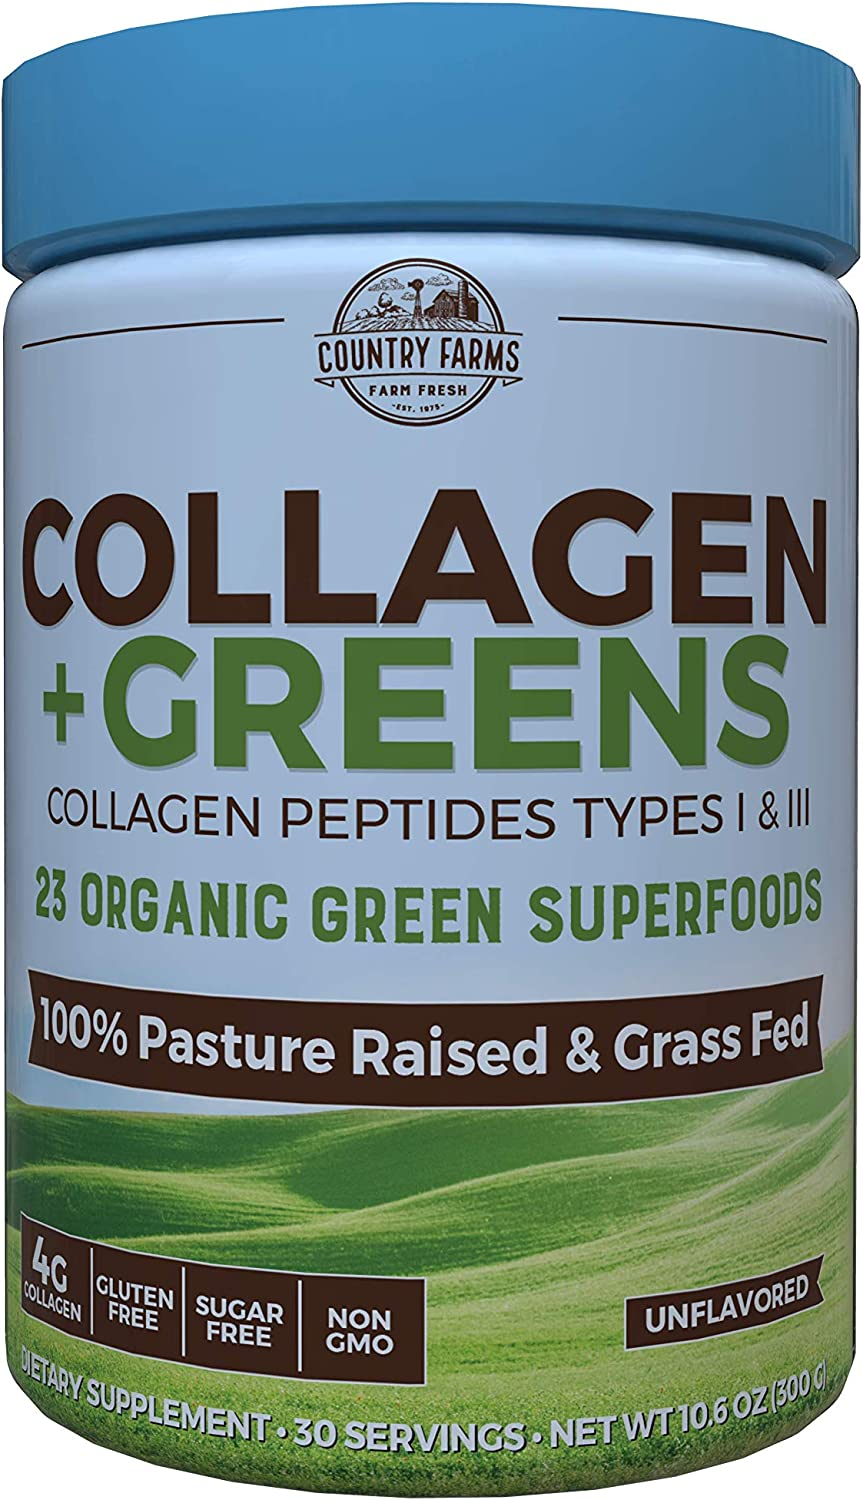 Country Farms Collagen + Greens Dietary Supplement, Energizing Superfoods, 10.6 oz, 30 Servings